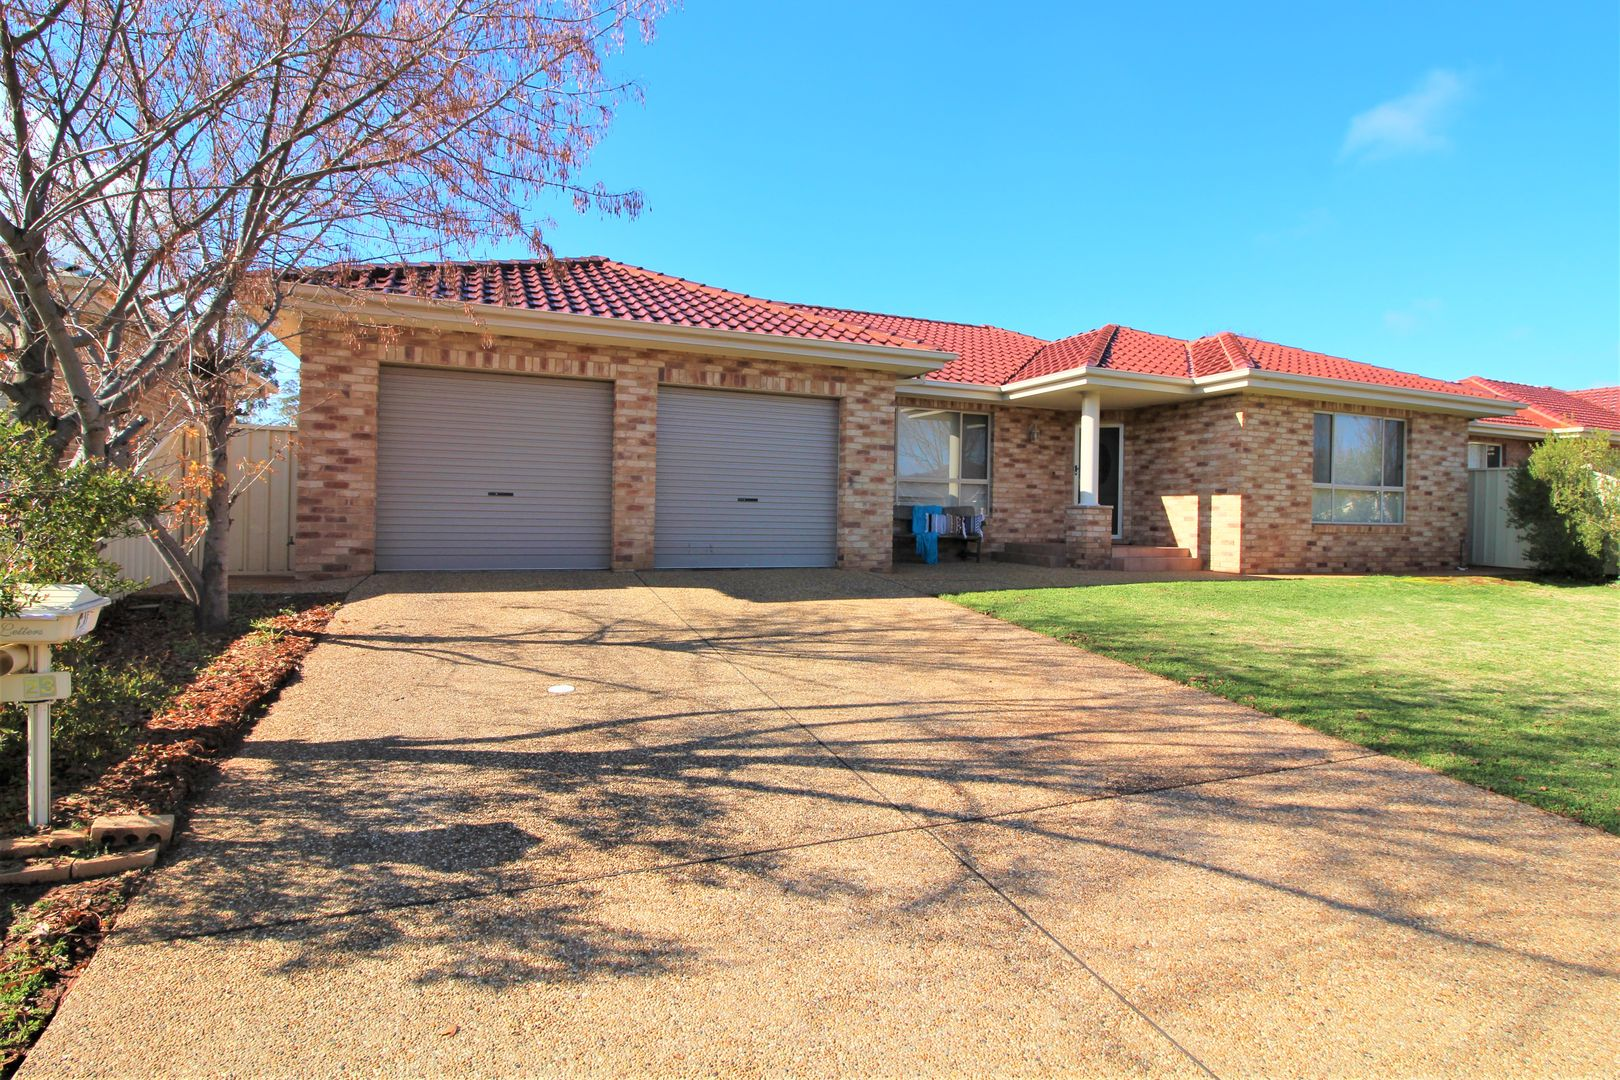 23 Nelson Drive, Griffith NSW 2680 - House For Sale   Domain